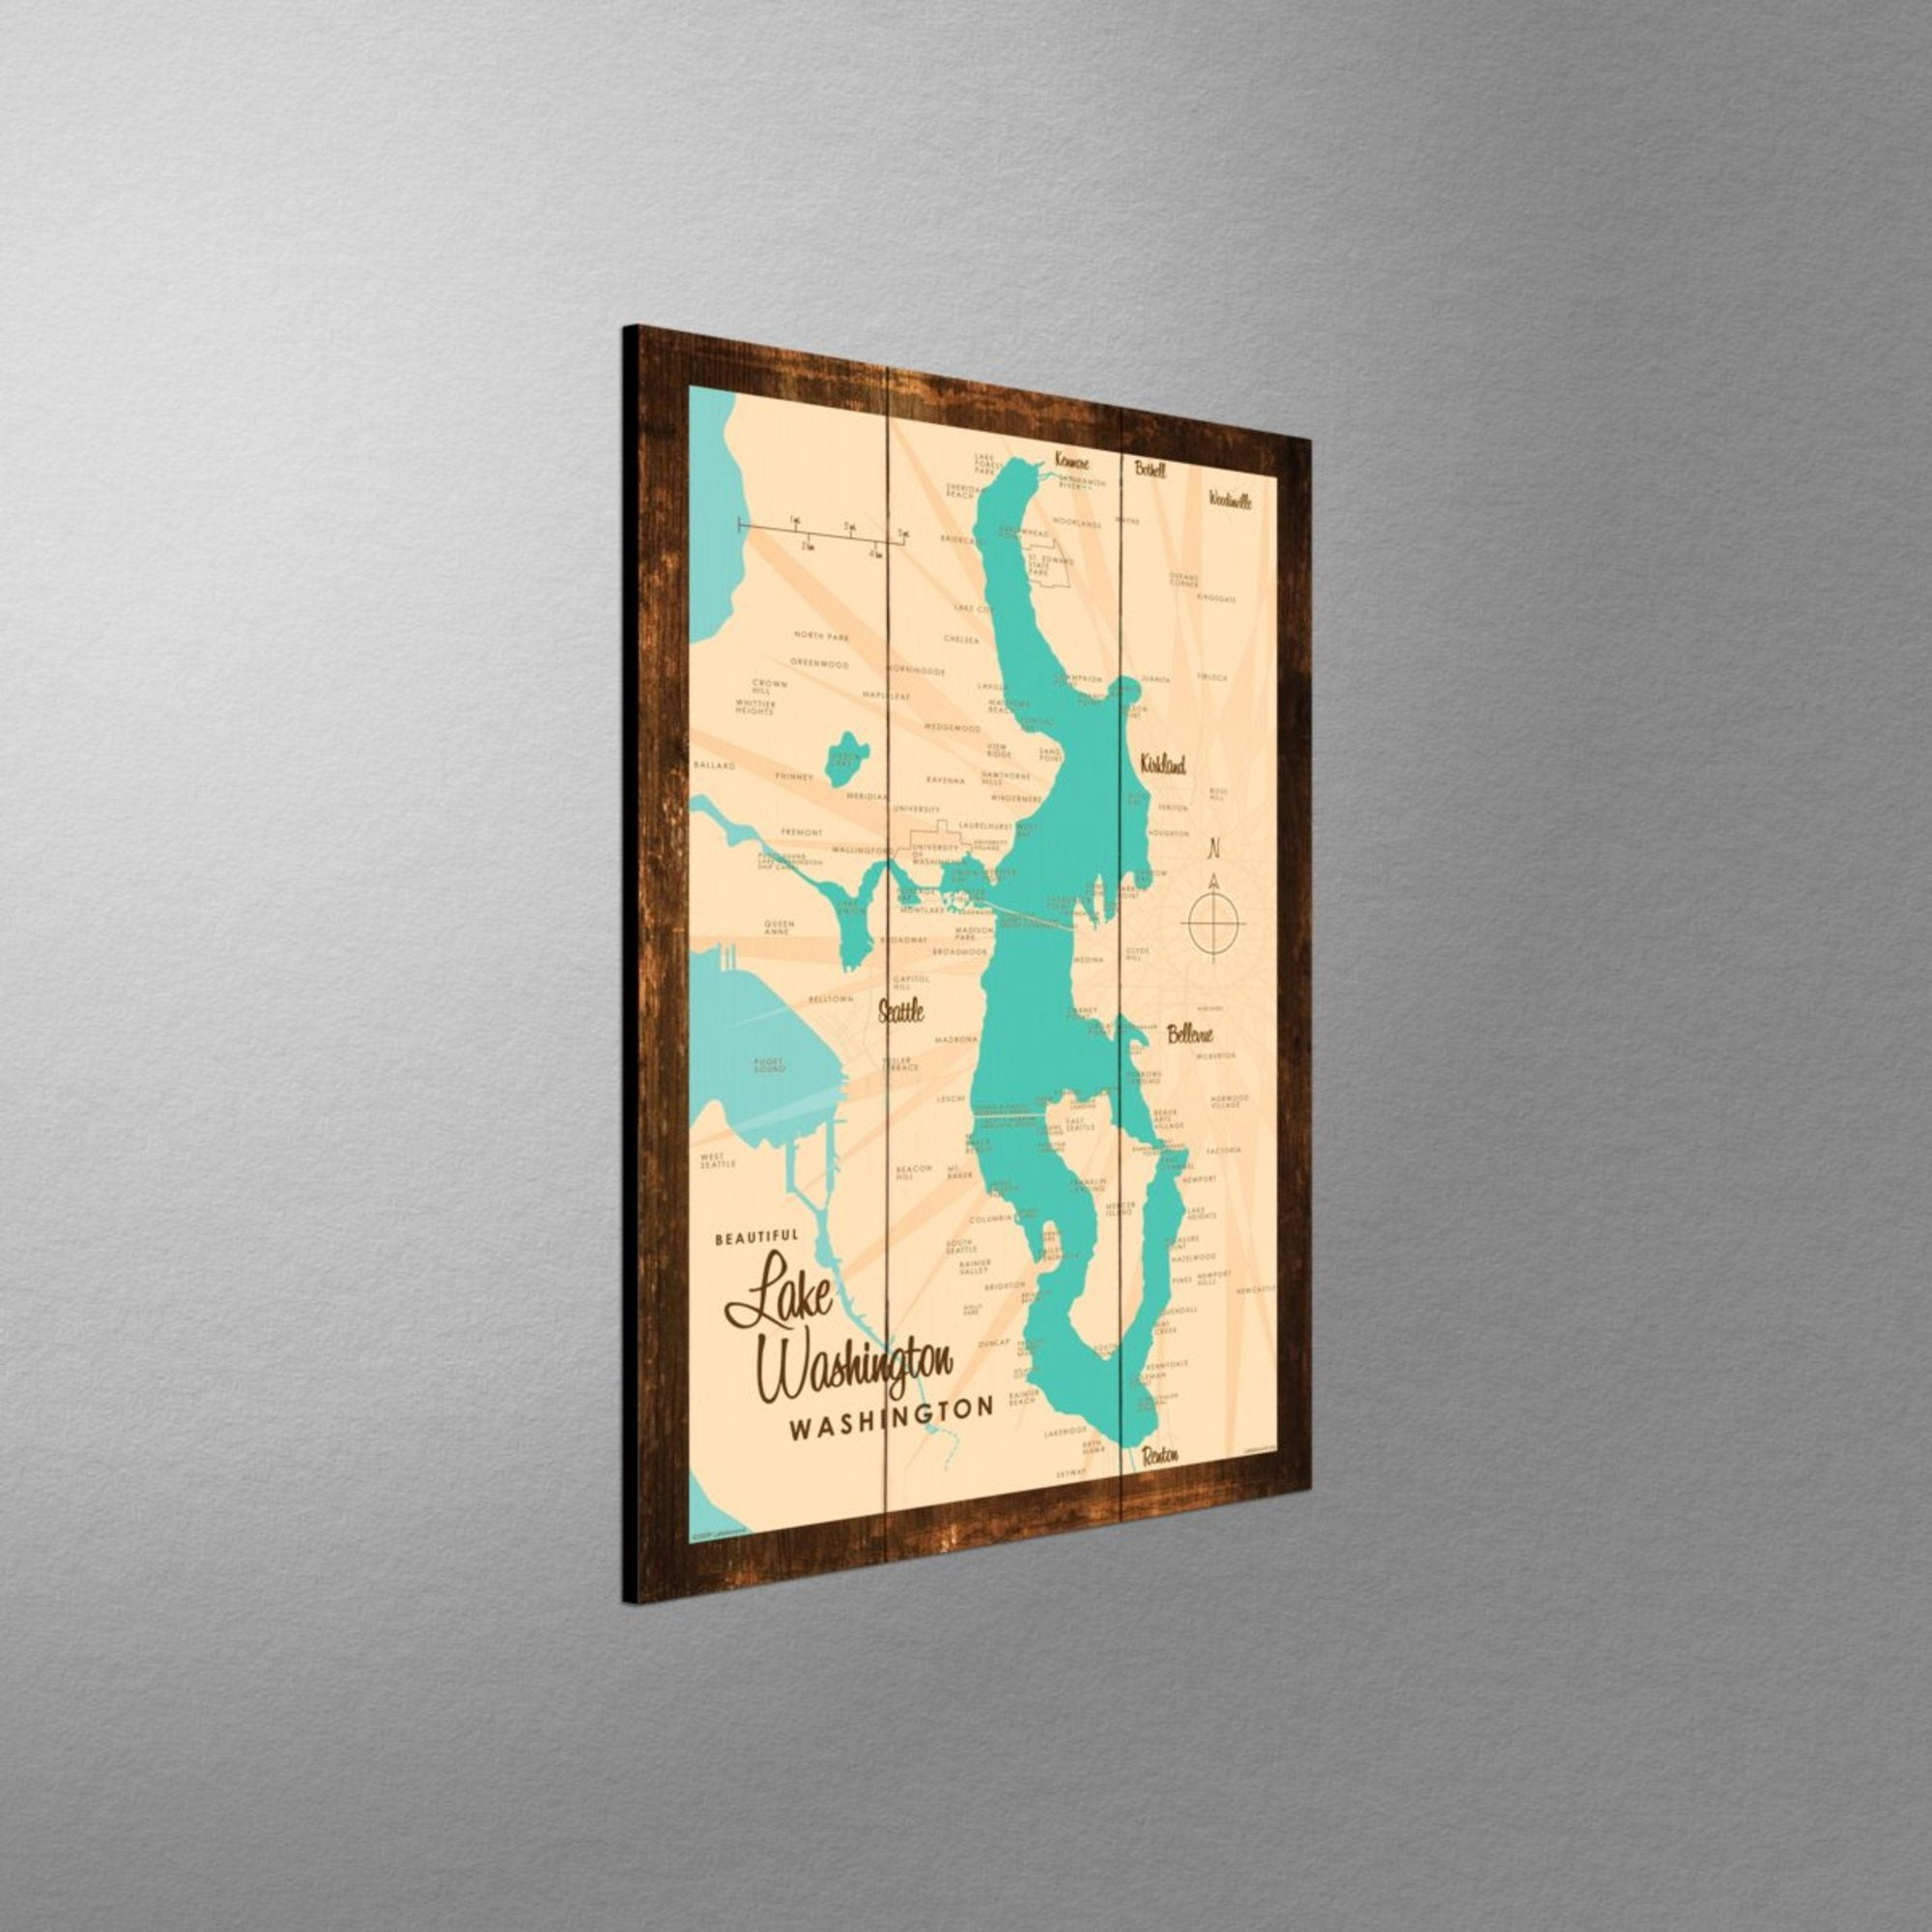 Lake Washington Washington, Rustic Wood Sign Map Art